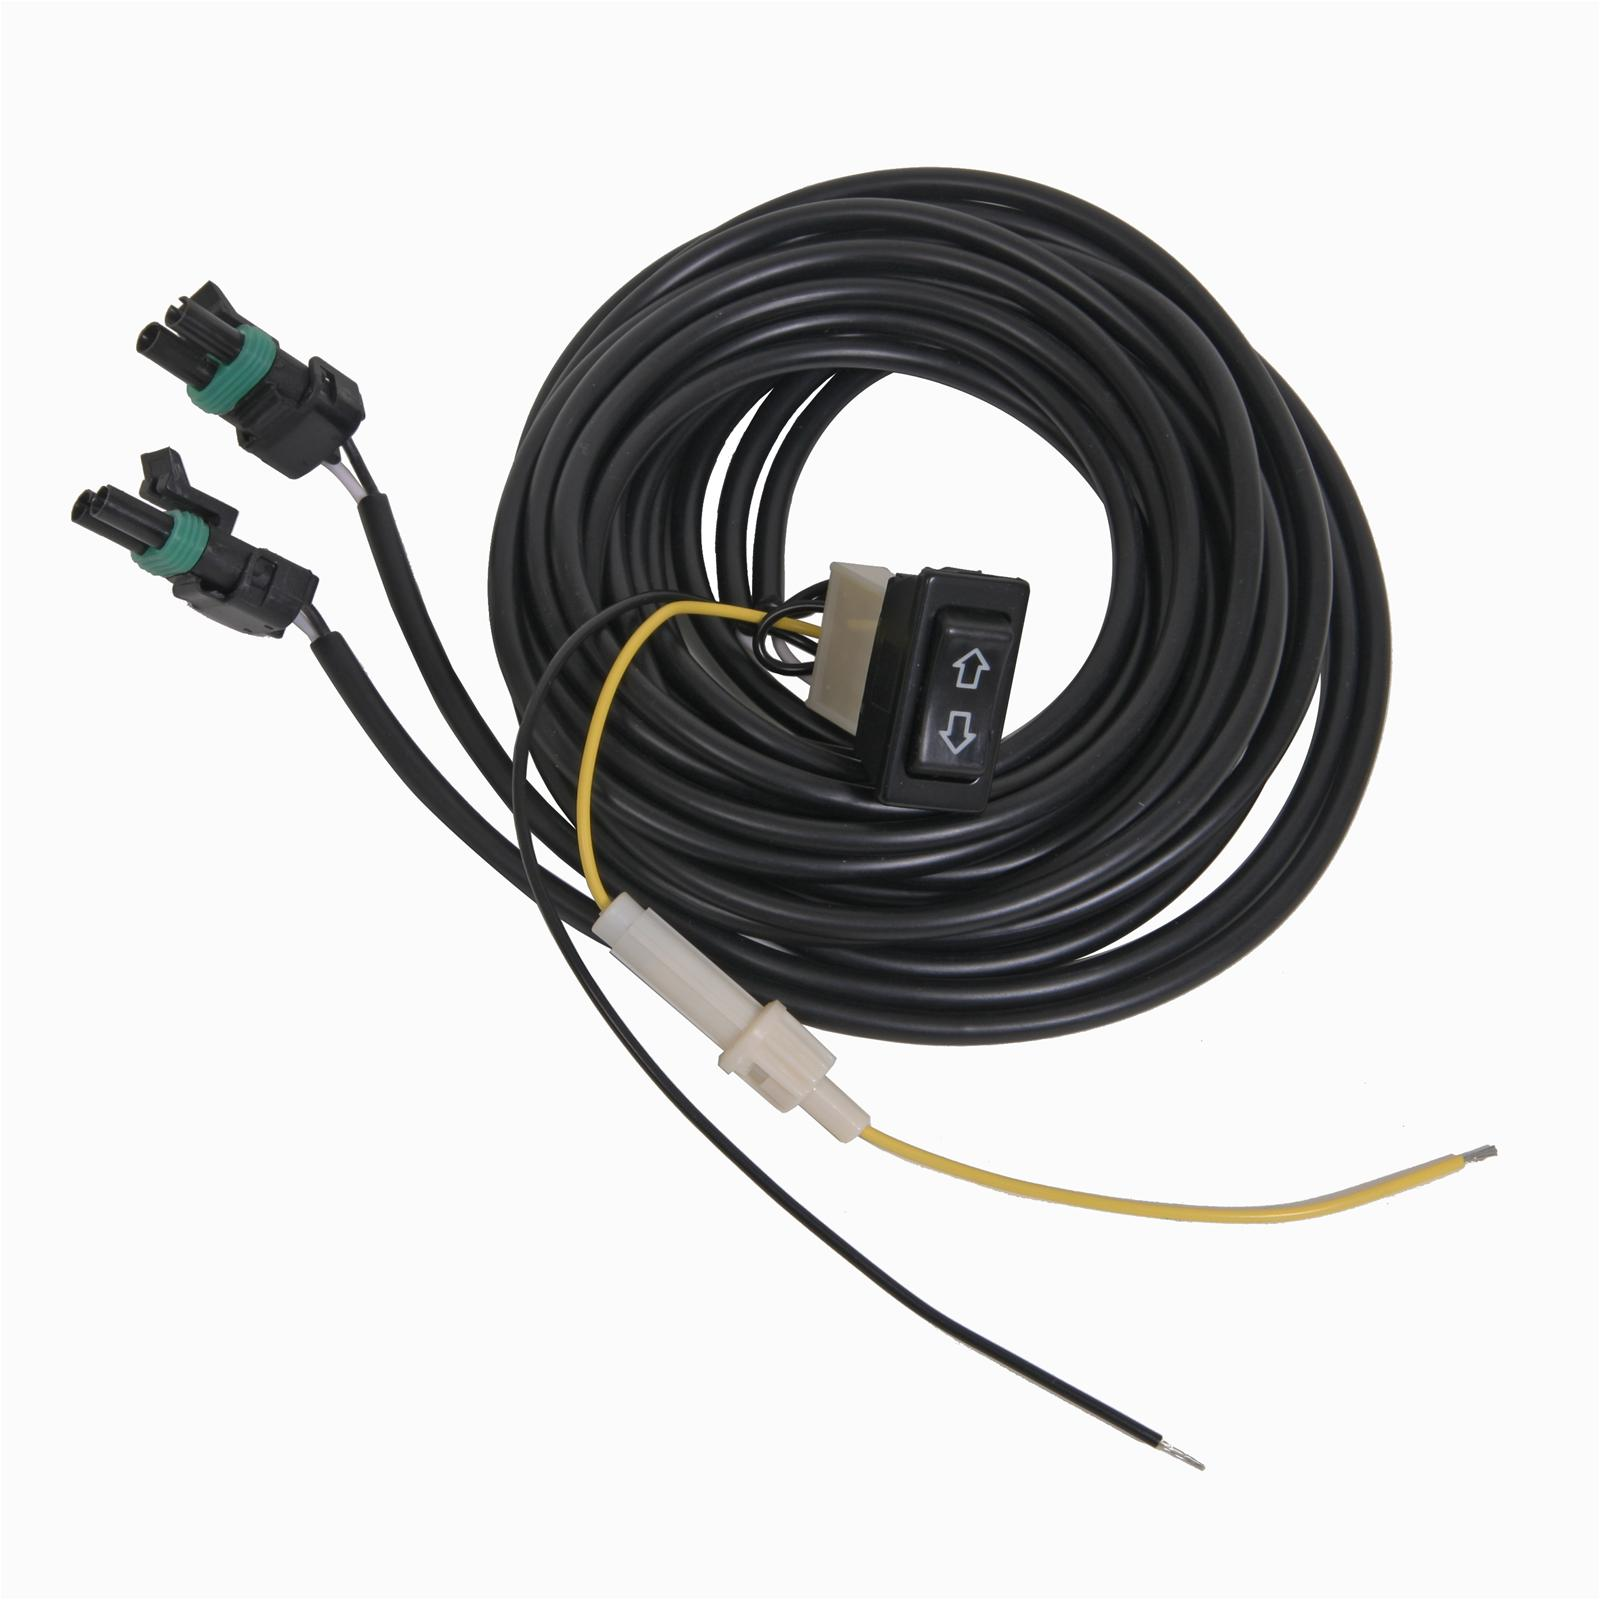 Summit Racing® Electric Exhaust Cutout Wiring Harness 670152 1 EBay